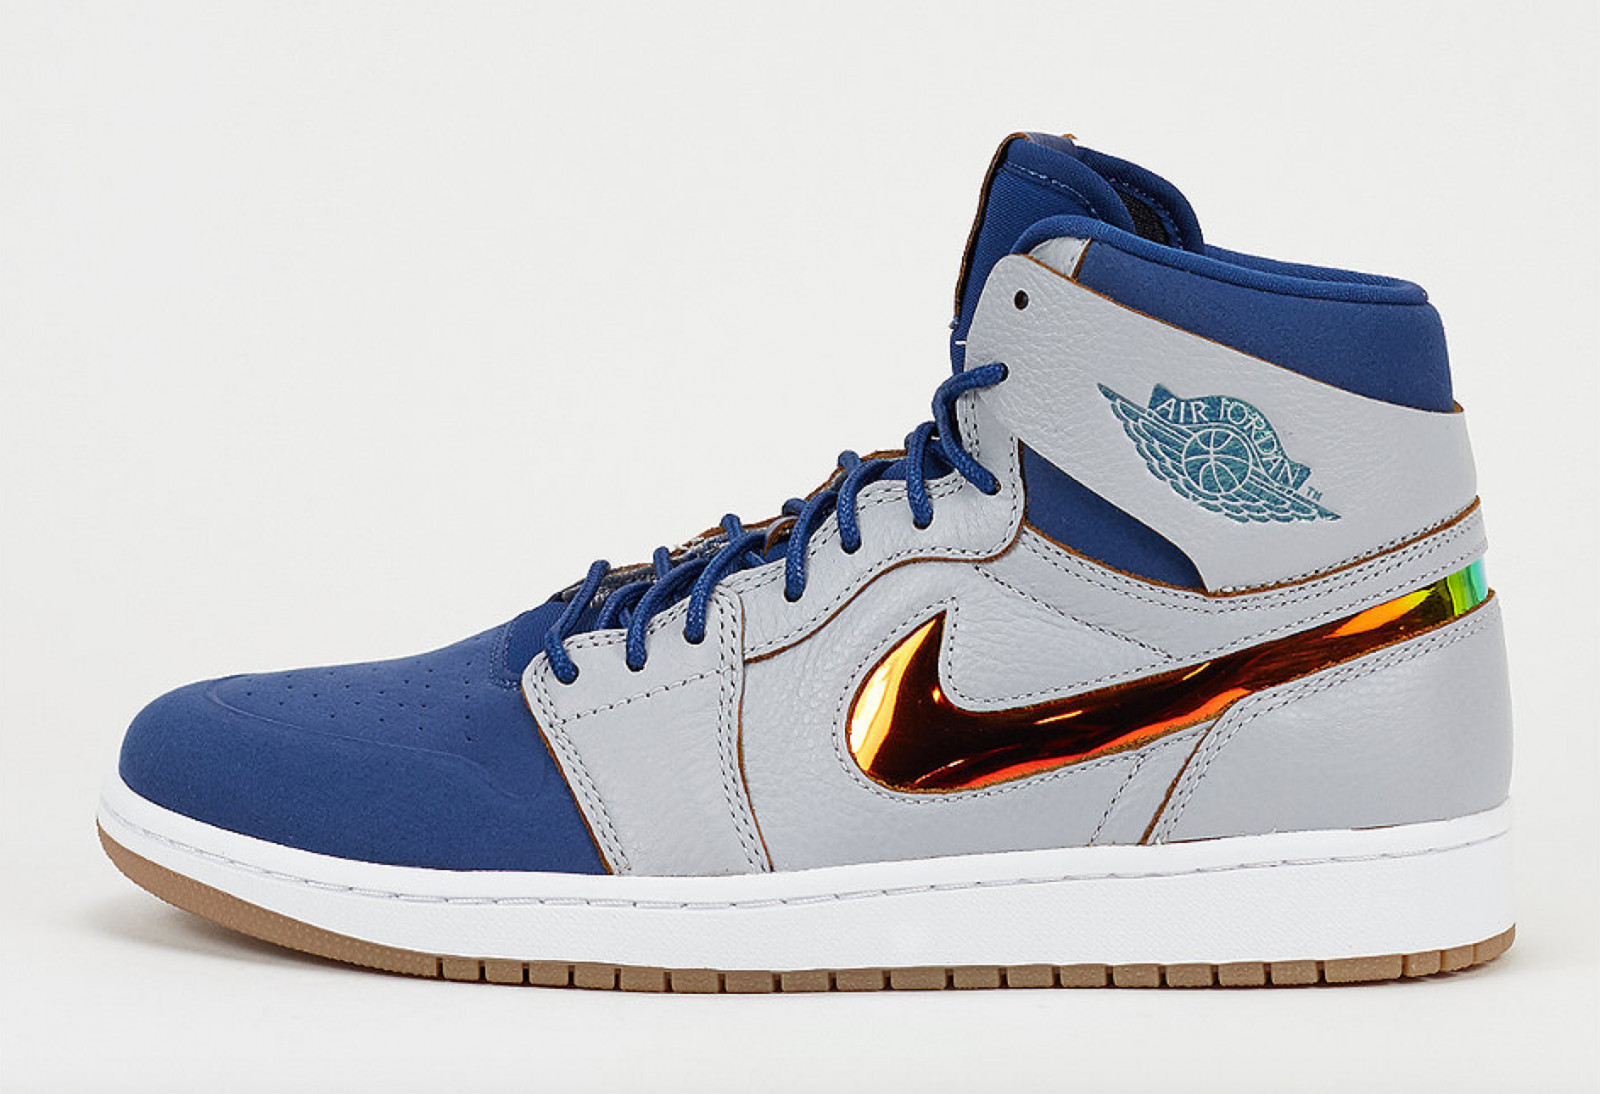 be67519eafc67a The Air Jordan 1 Nouveau Dunks From Above